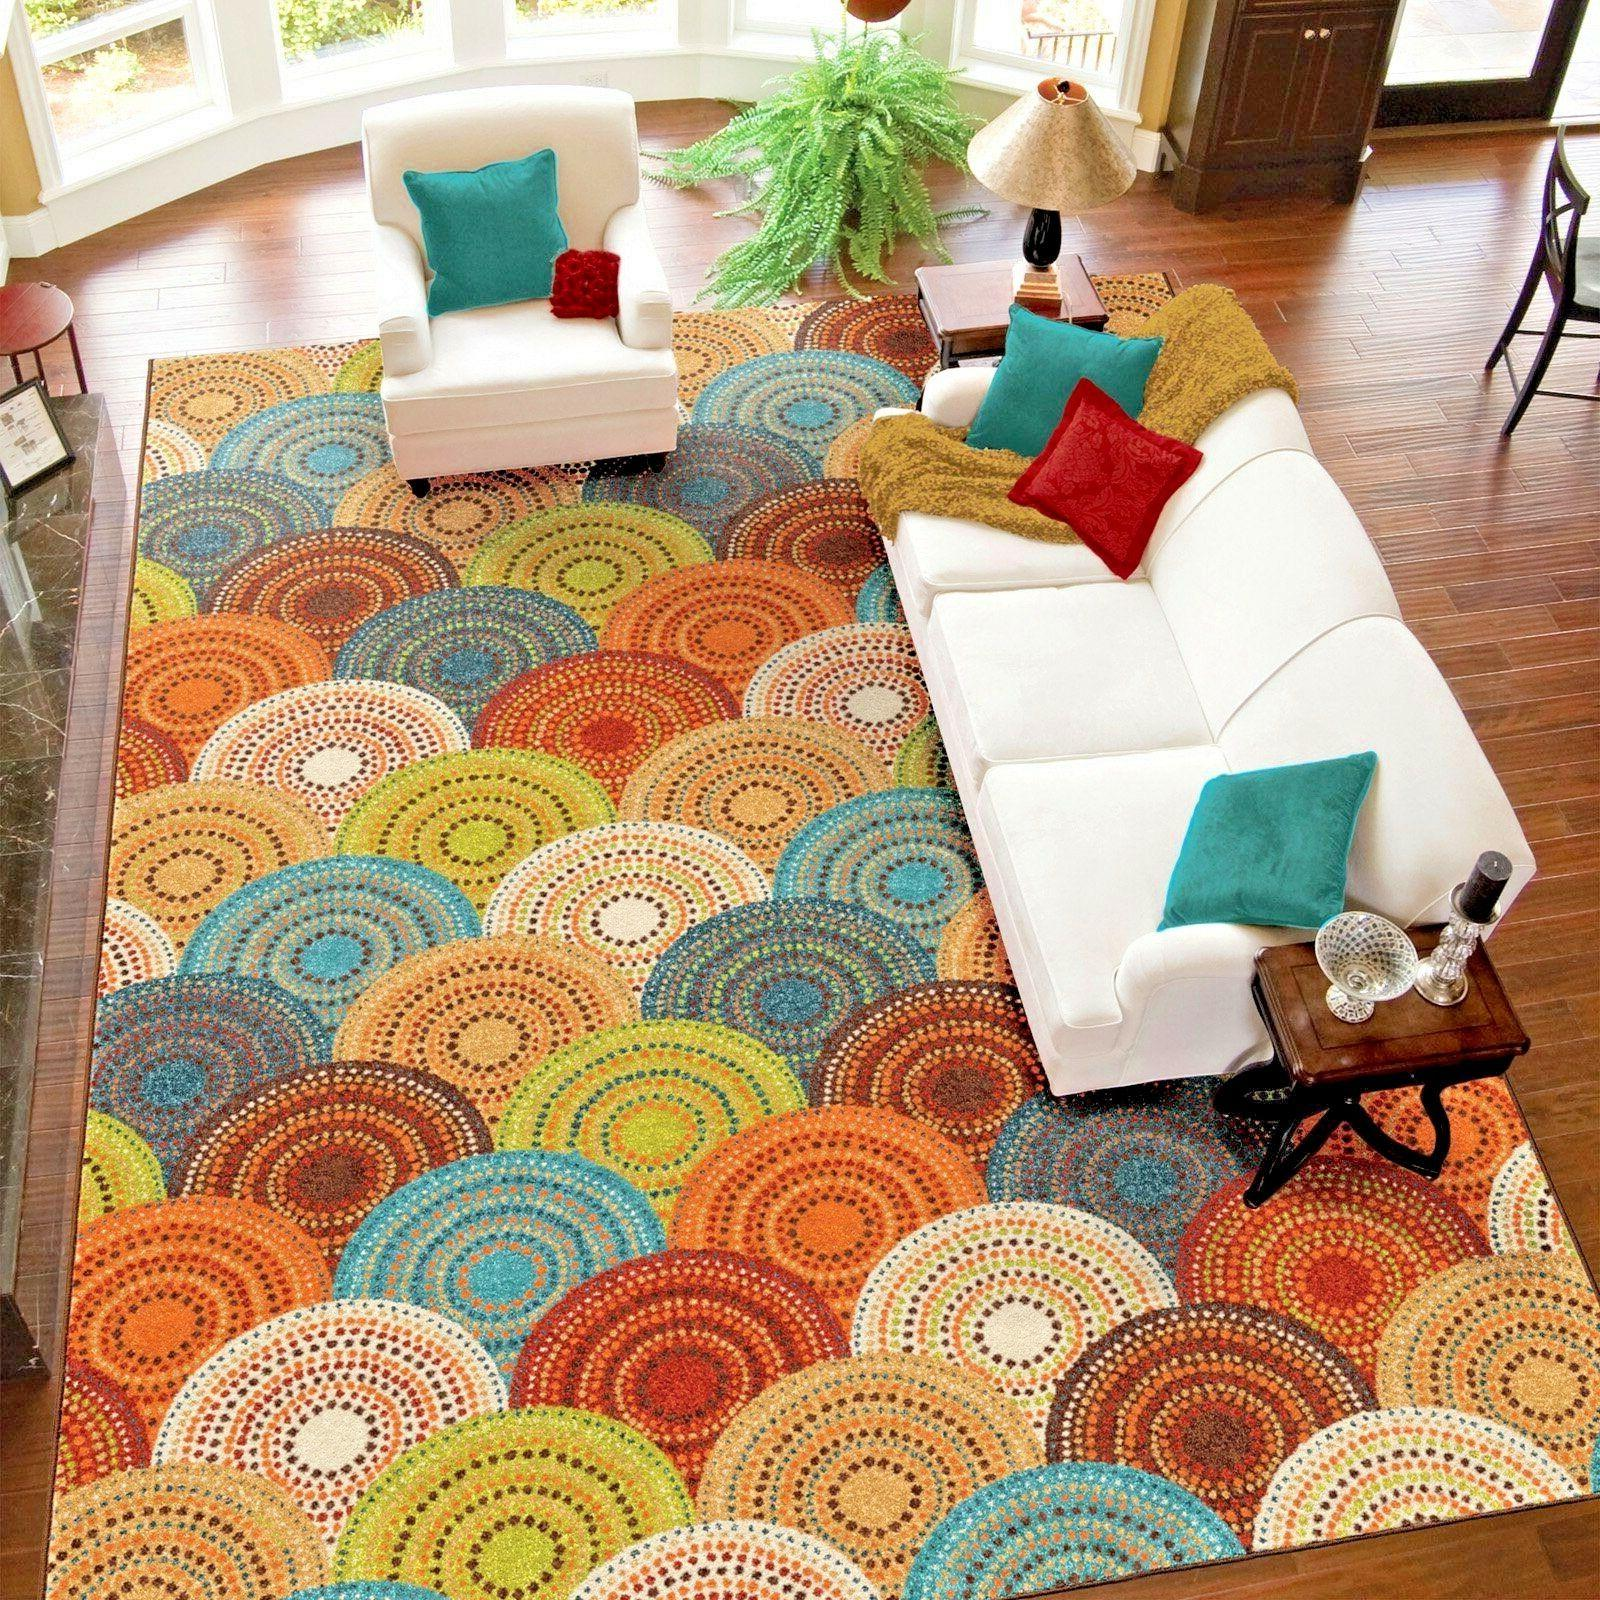 RUGS RUGS CARPETS 8x10 RUG CUTE COLORFUL LARGE COOL RUGS ~